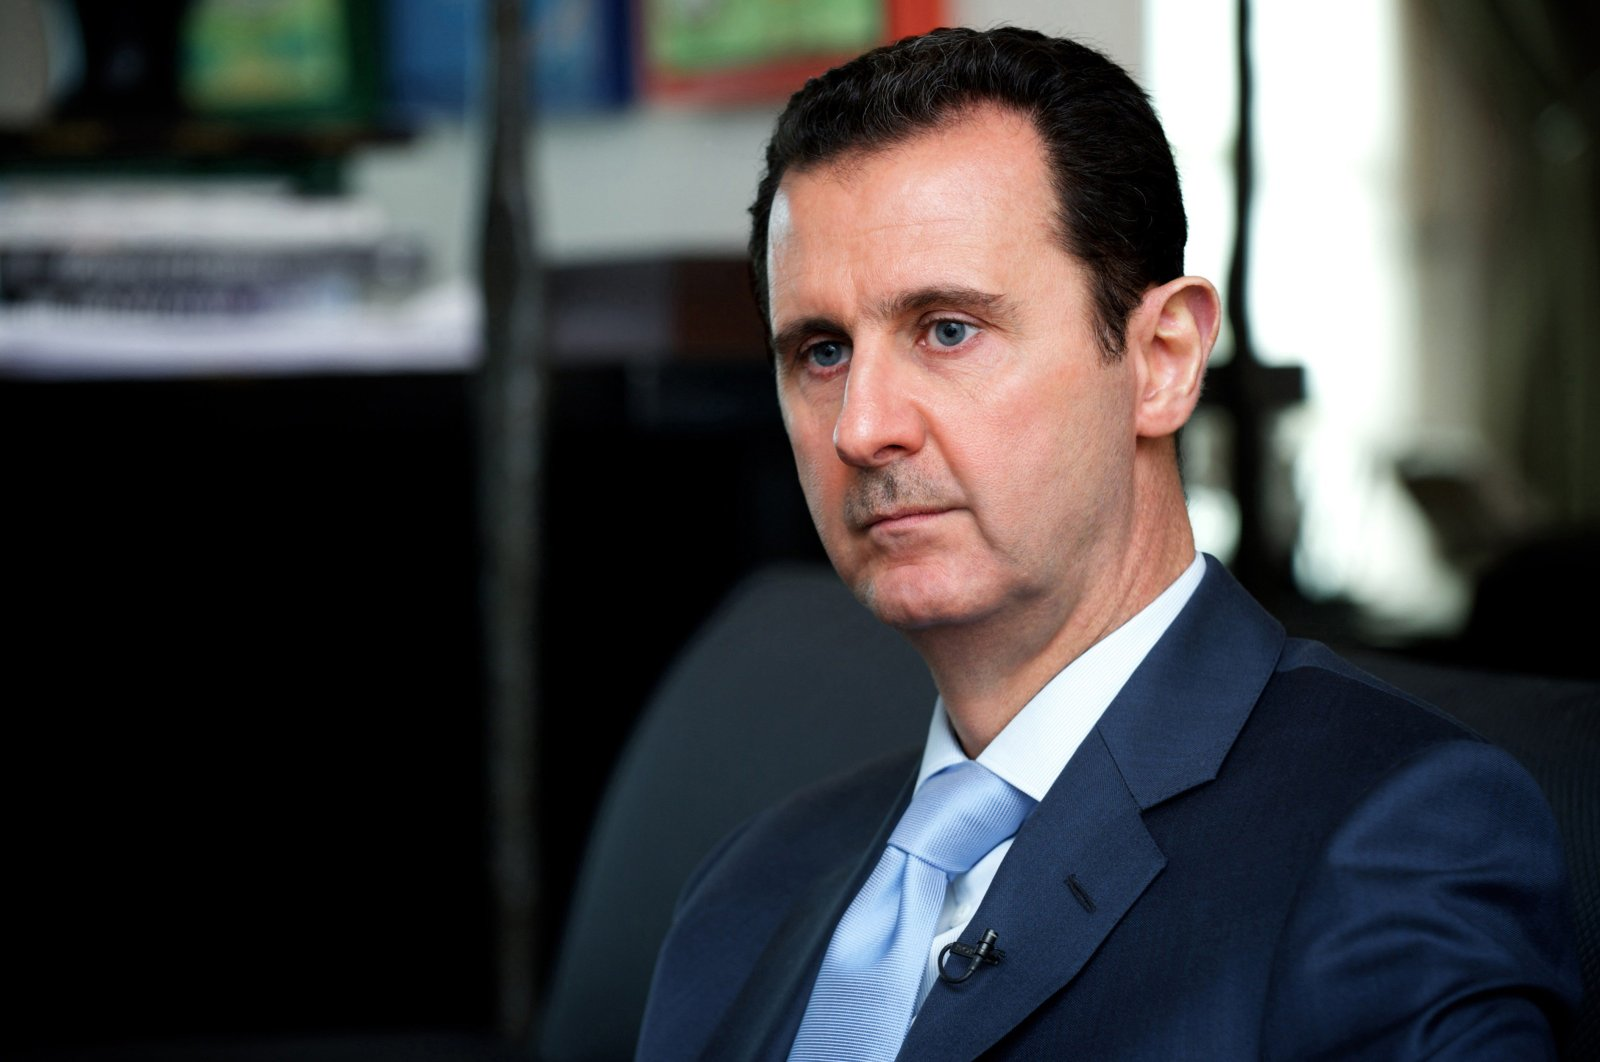 A handout picture released by the Syrian Arab News Agency (SANA) on January 15, 2015 shows Bashar al-Assad giving an interview to the Eterarna Novina Czech newspaper in Damascus. (AFP Photo)